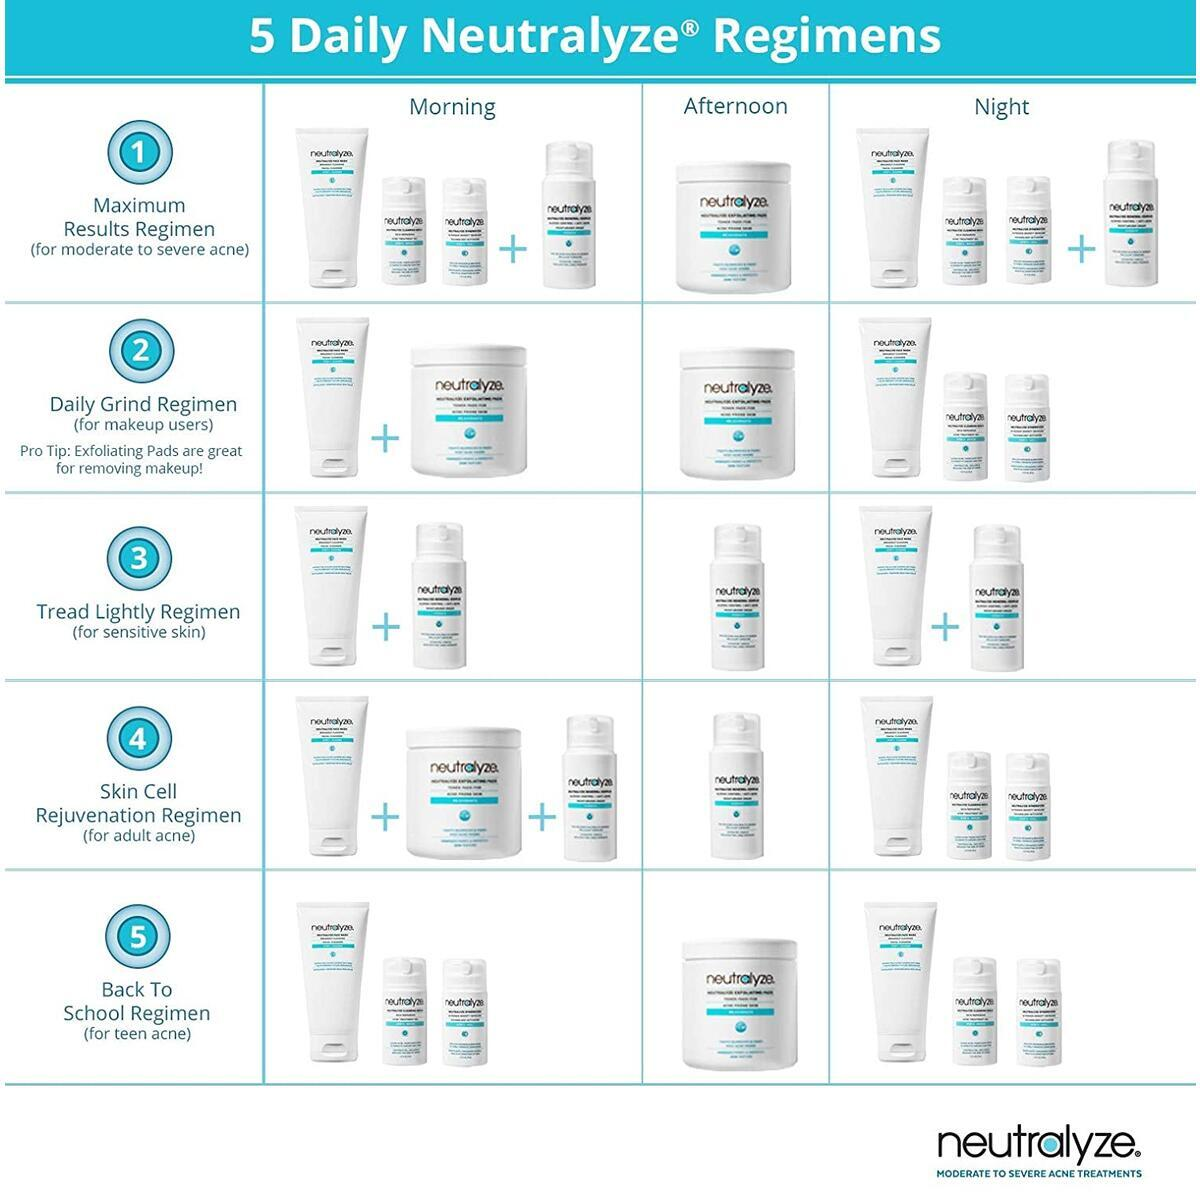 Neutralyze Moderate To Severe Acne Face Wash | Maximum Strength Facial Cleanser For Acne Prone Skin With 2% Salicylic Acid + 1% Mandelic Acid + Nitrogen Boost Skincare Technology (5 oz)